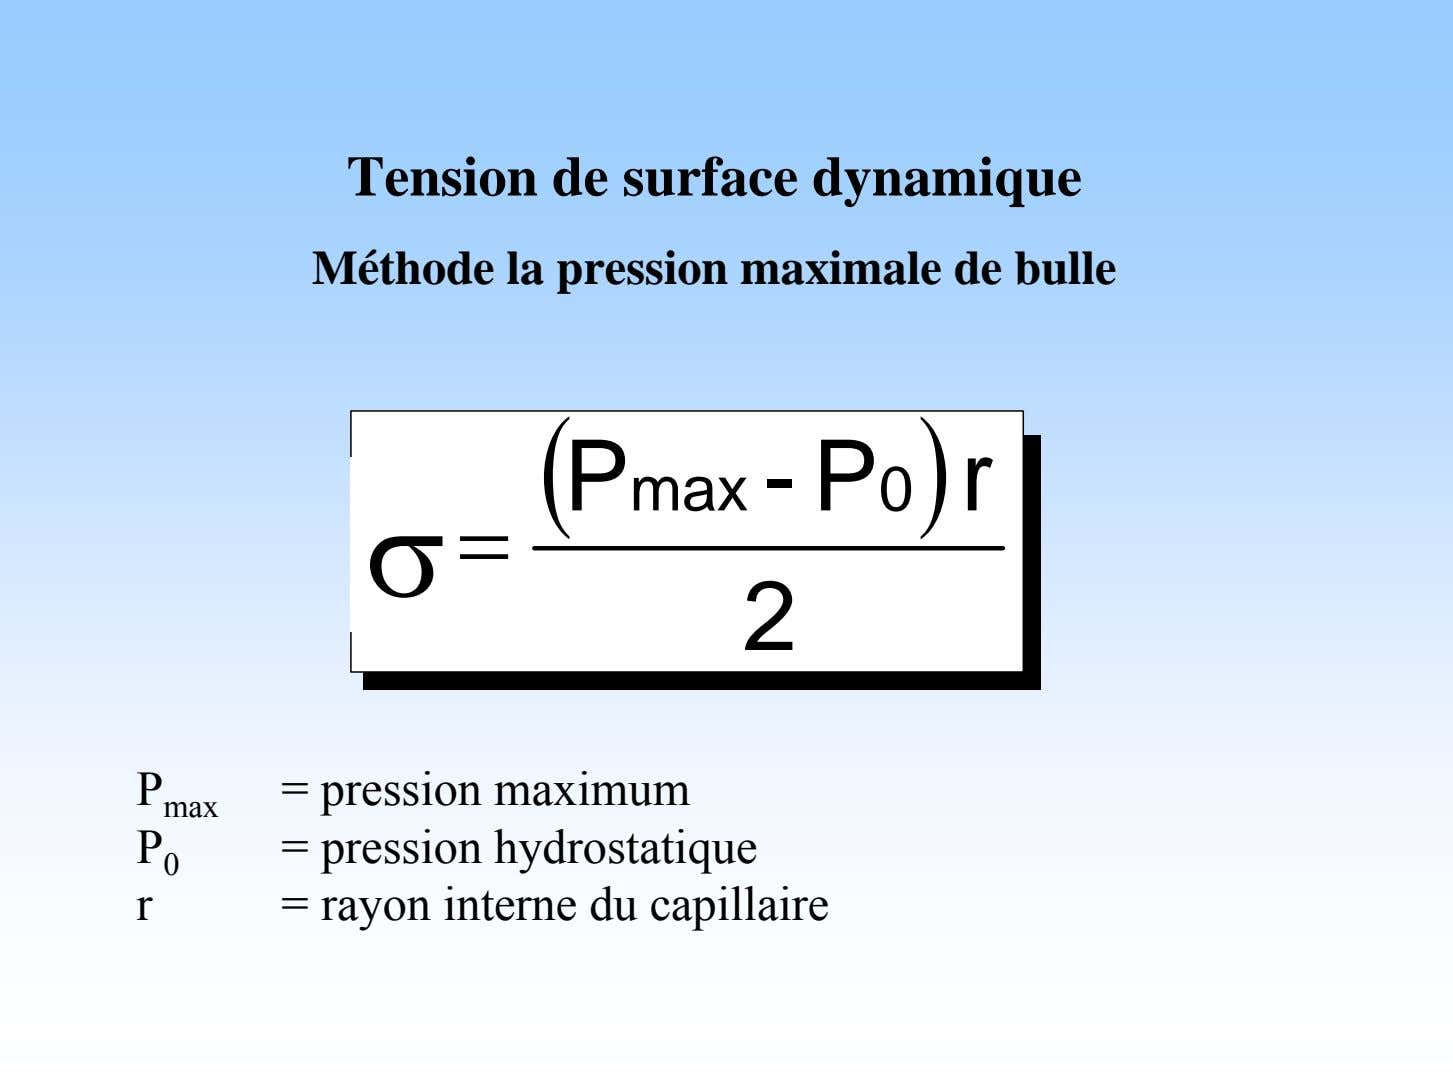 Tension de surface dynamique Méthode la pression maximale de bulle  P - P 